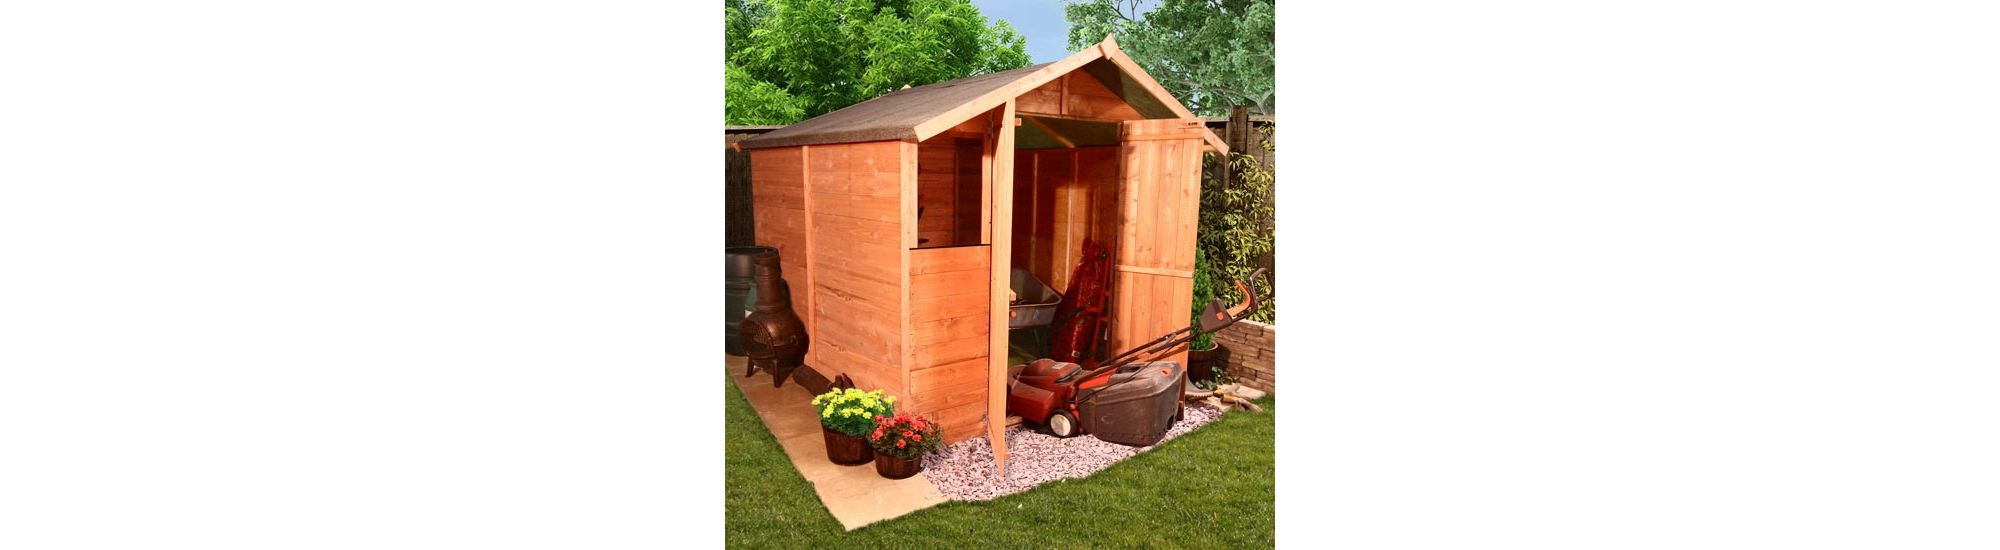 BillyOh 4000 Kent 8 x 8 Tongue & Groove Apex Shed